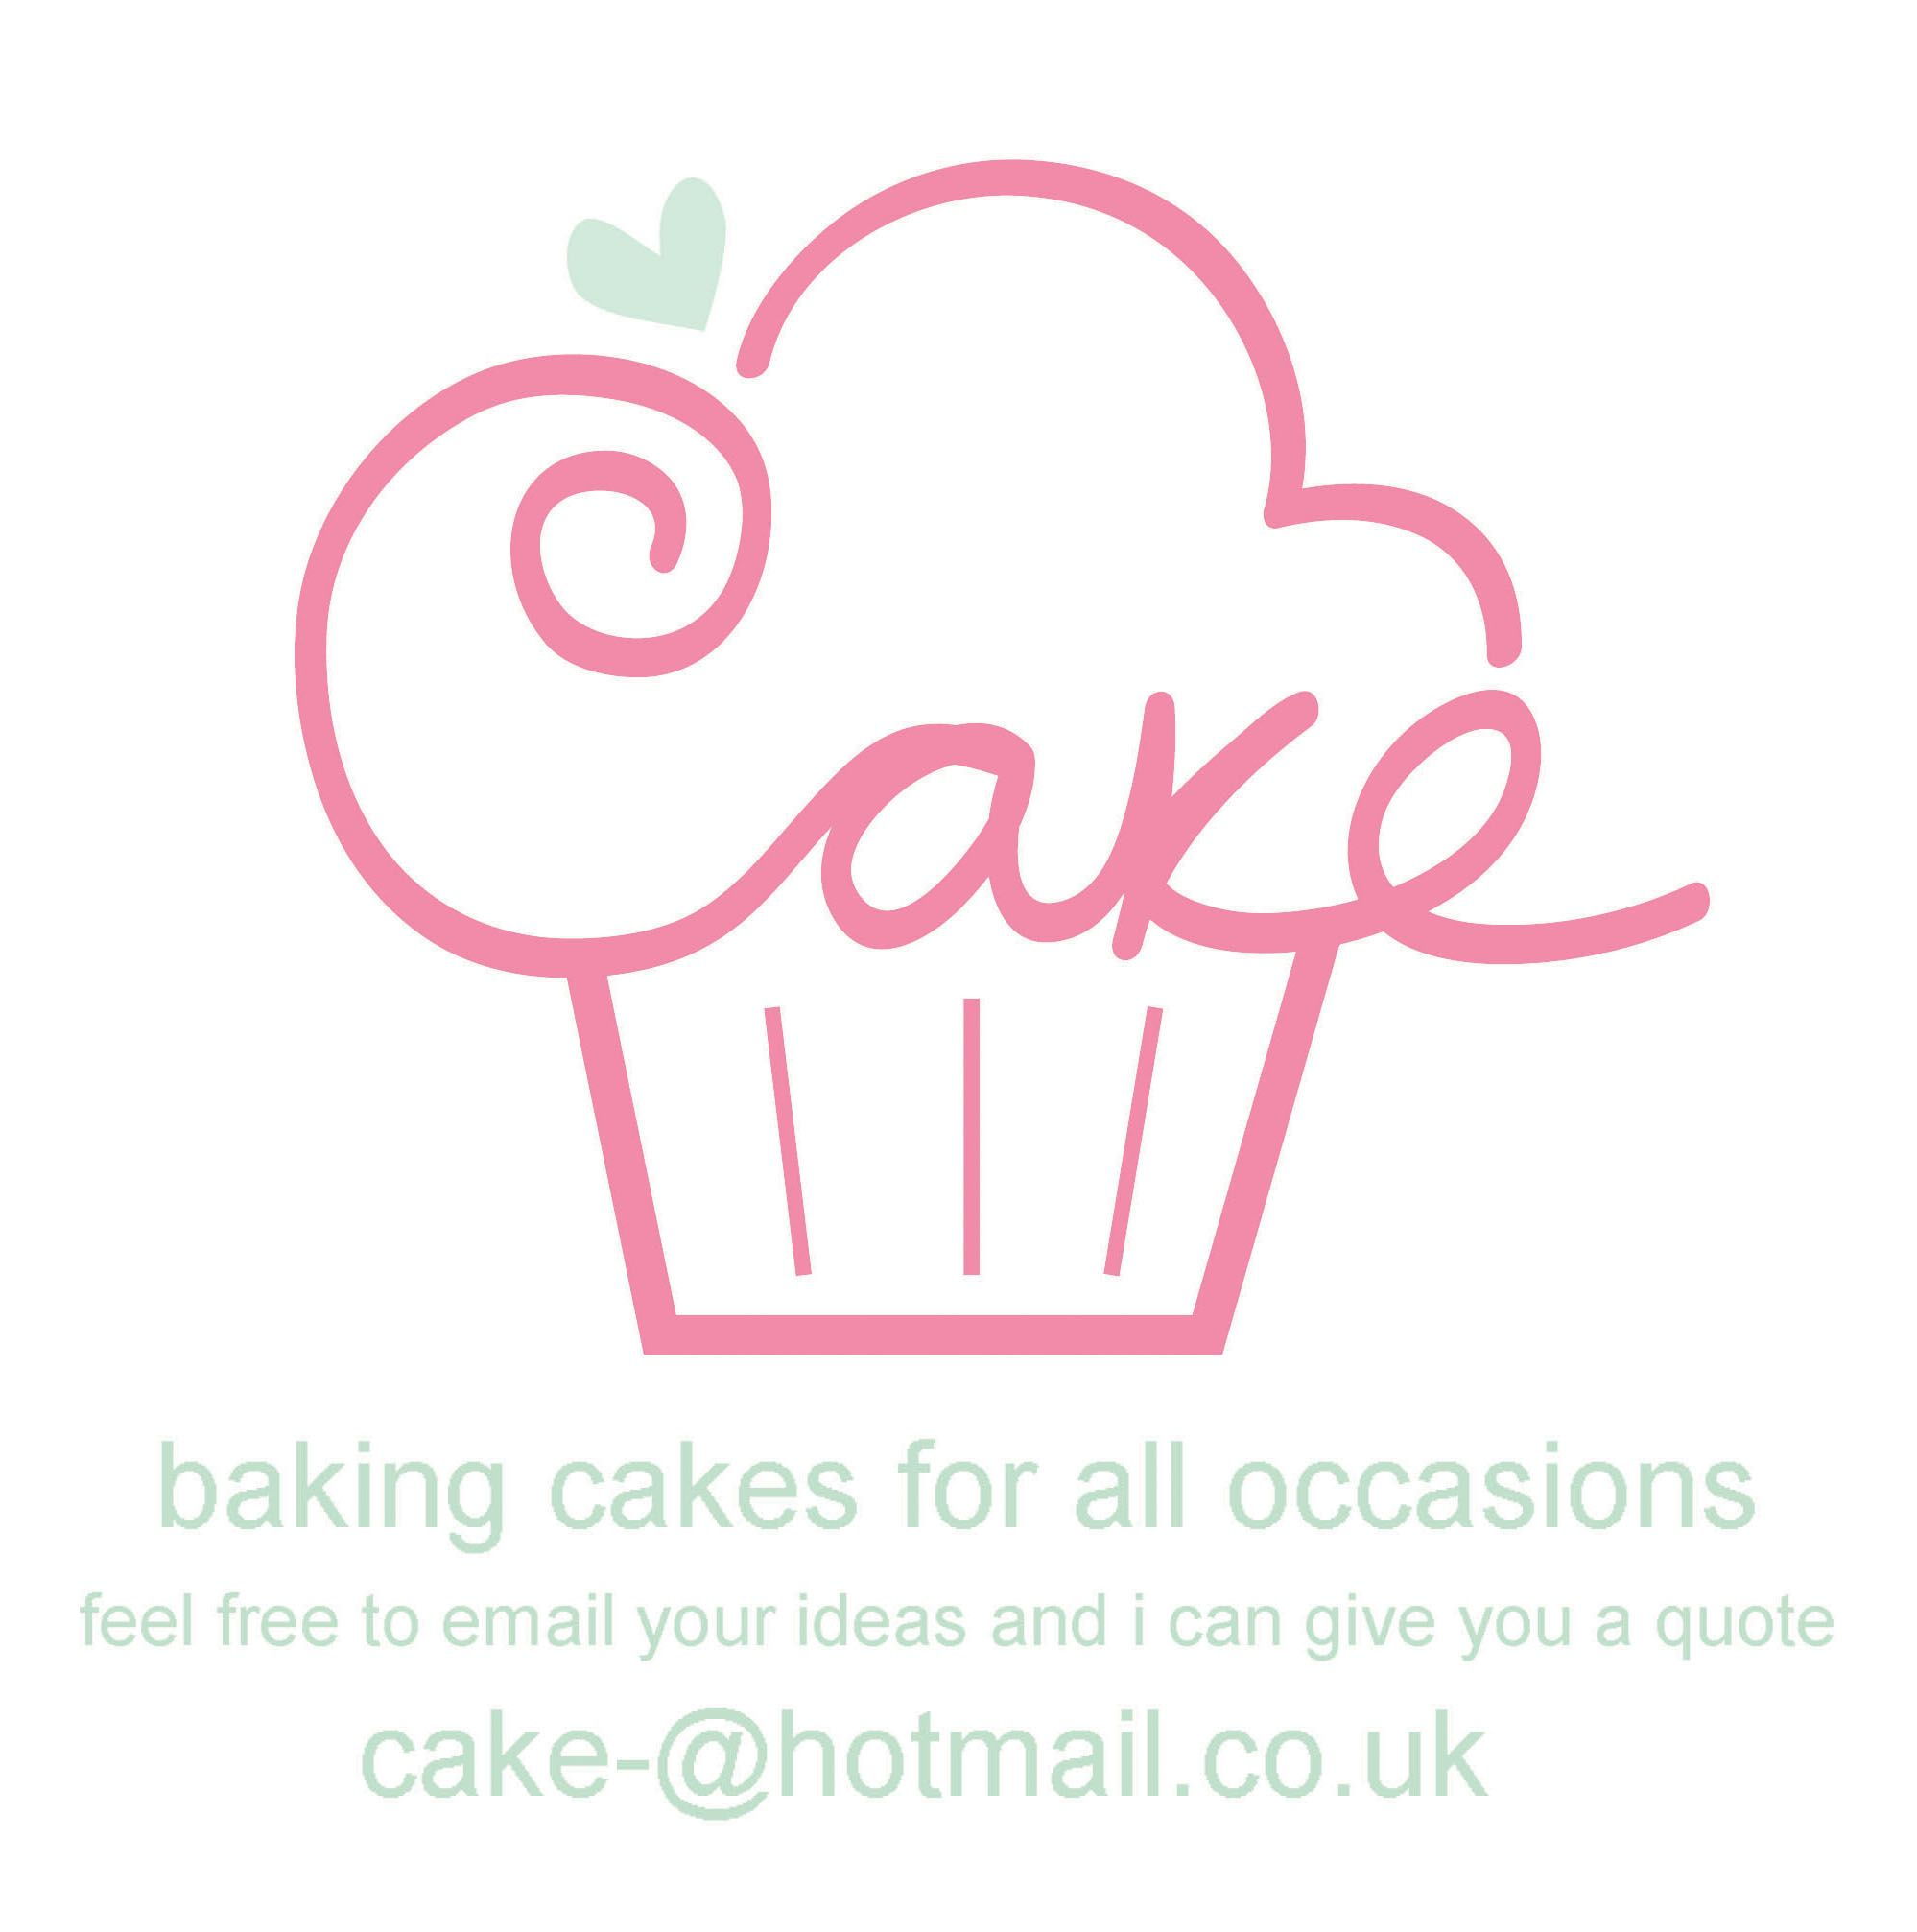 Vintage Cake Logo Design : new cake logo: from the beginning Free business logo ...